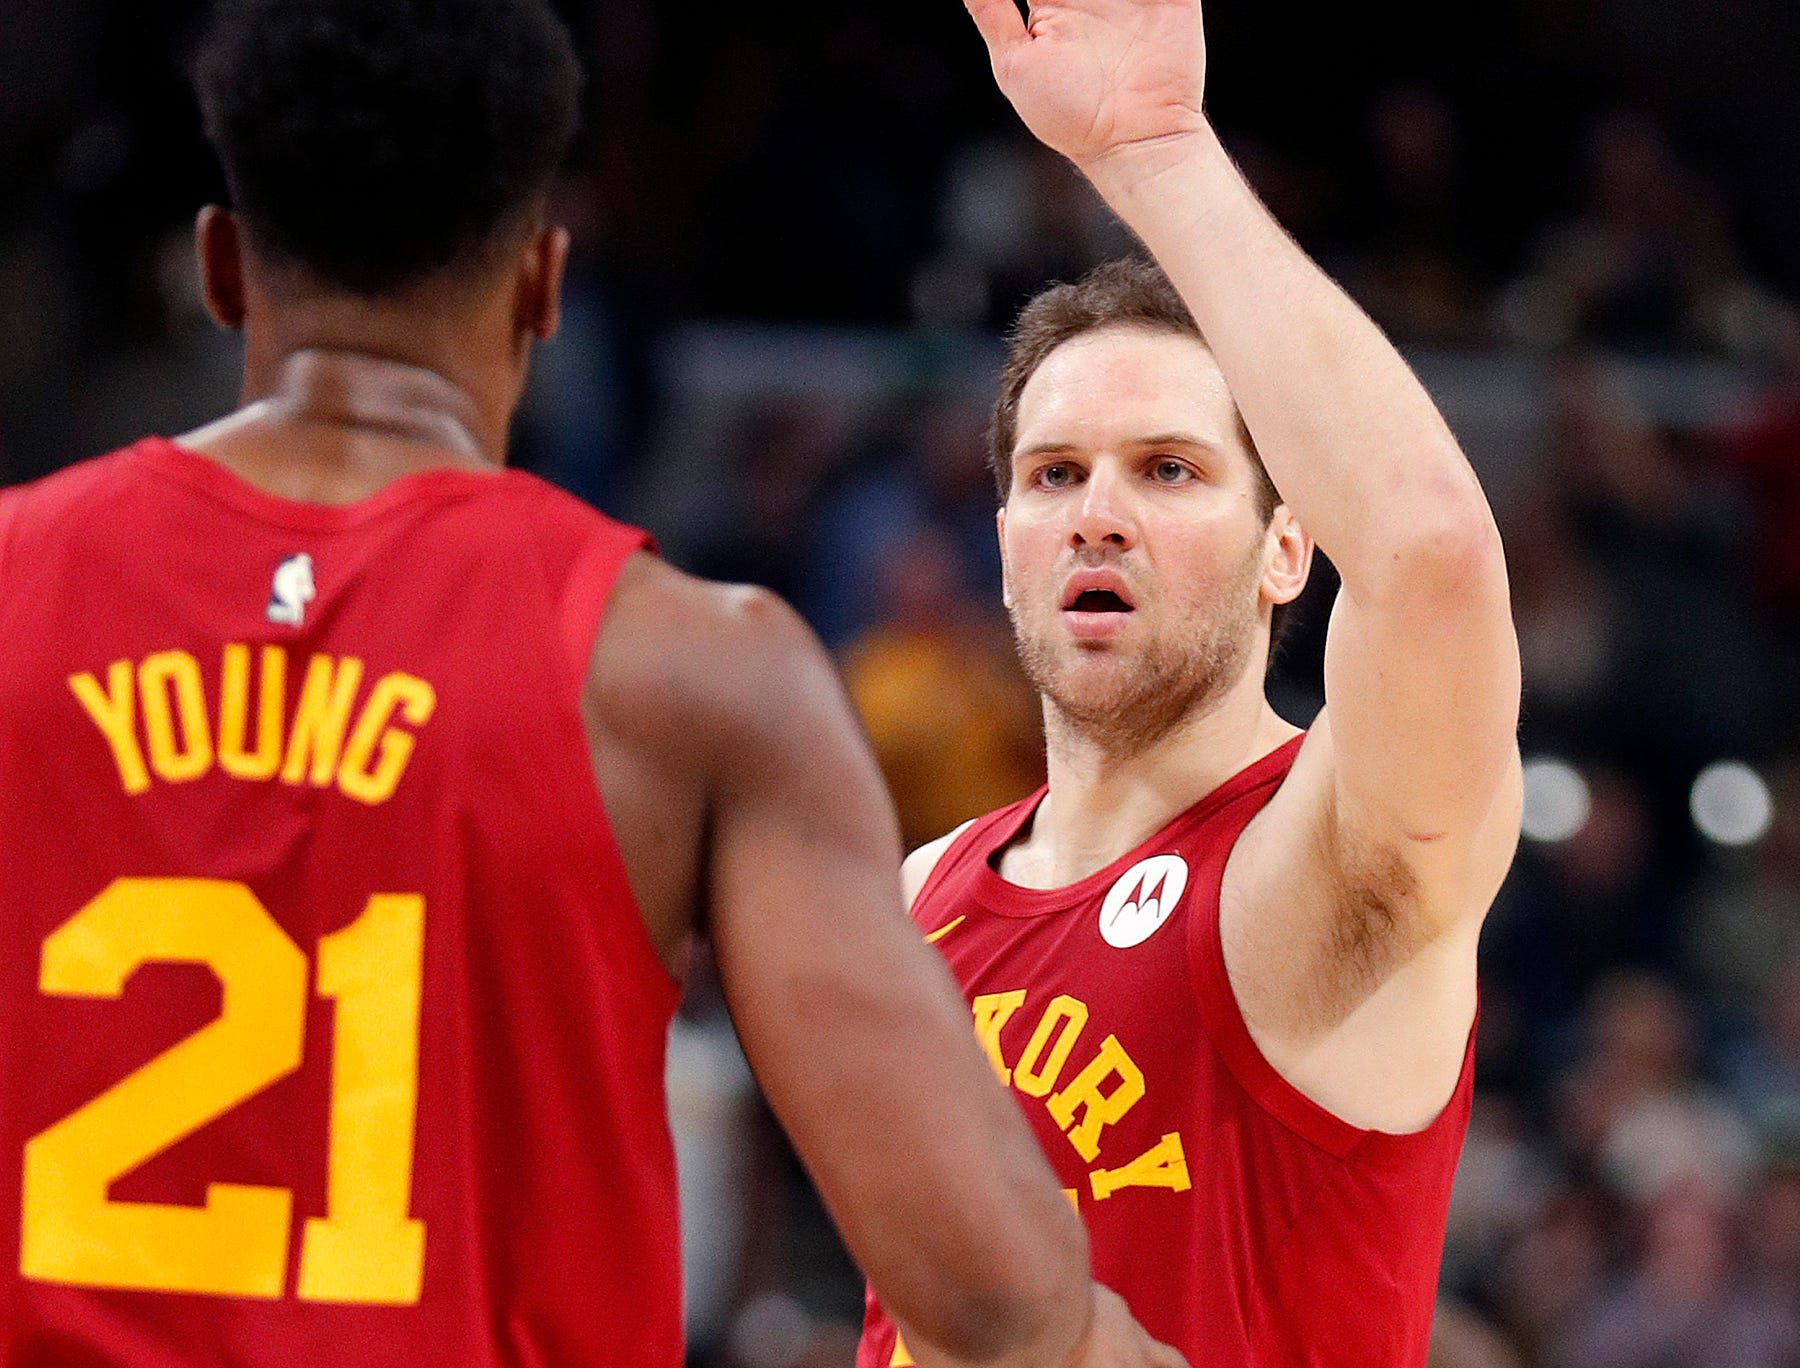 Indiana Pacers forward Bojan Bogdanovic (44) high-fives  Thaddeus Young (21) during a timeout of their game against the LA Clippers in the first half of their game at Bankers Life Fieldhouse on Thursday, Feb. 7, 2019.